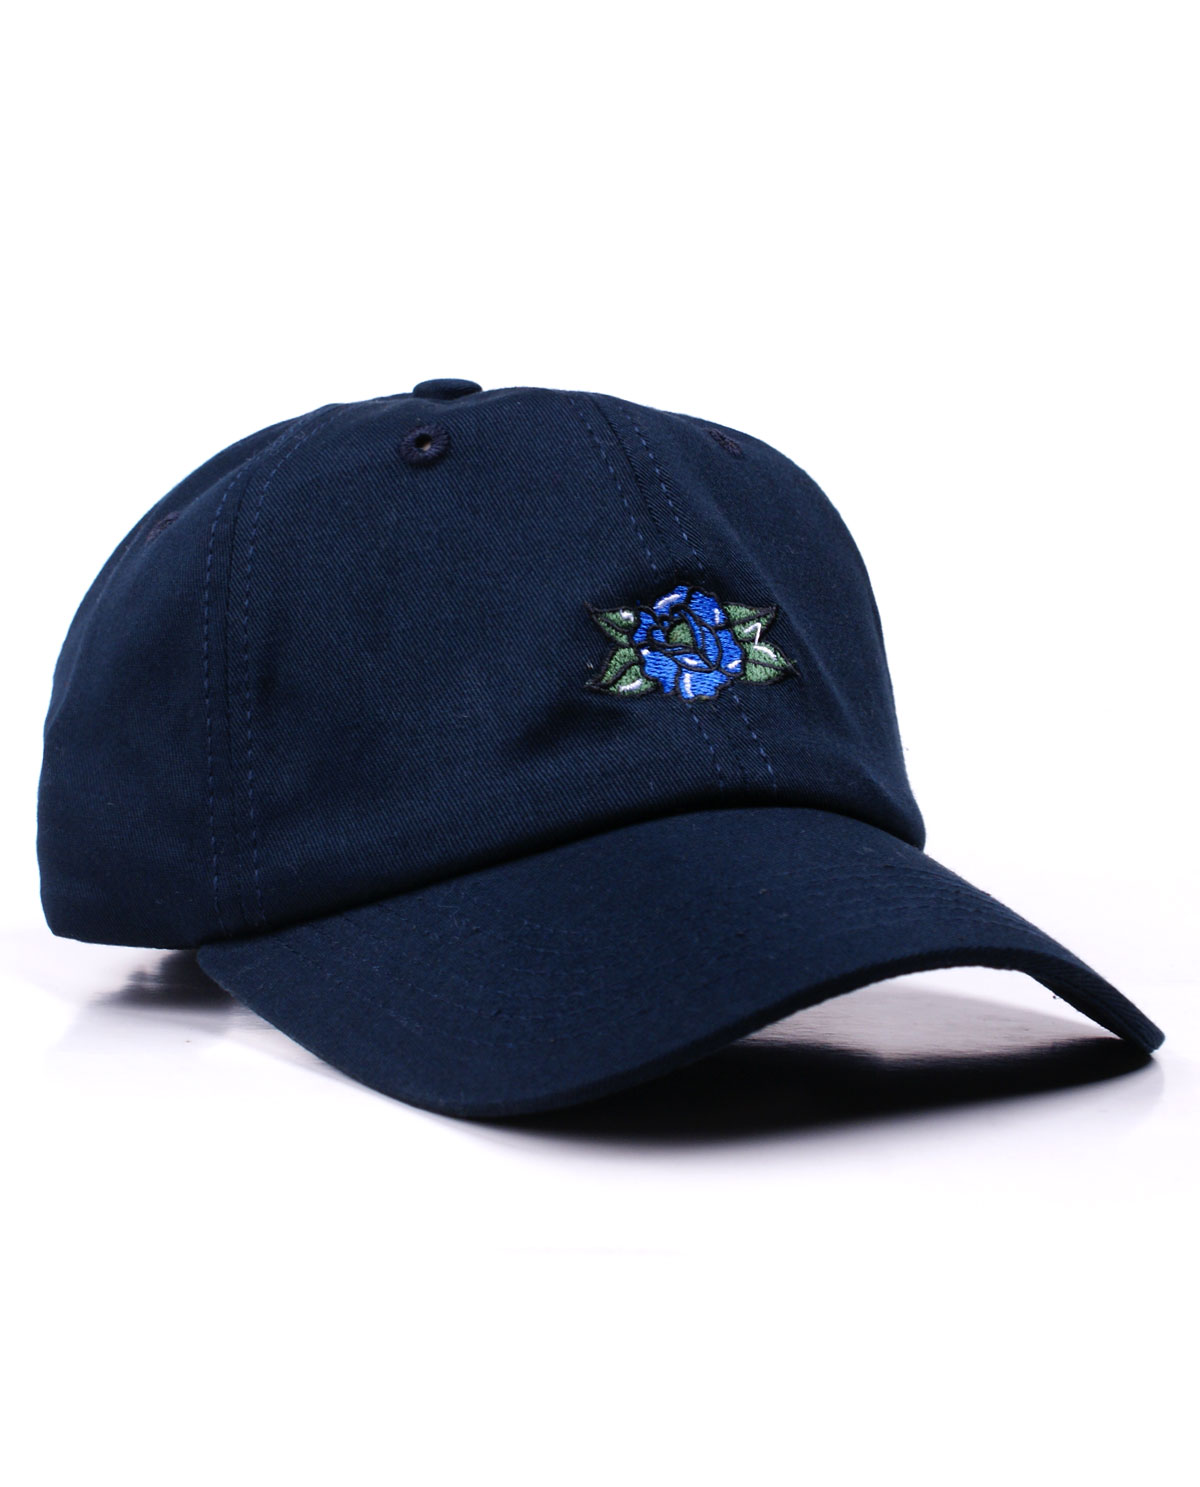 94ef133fda6 BLUE ROSE HAT NAVY